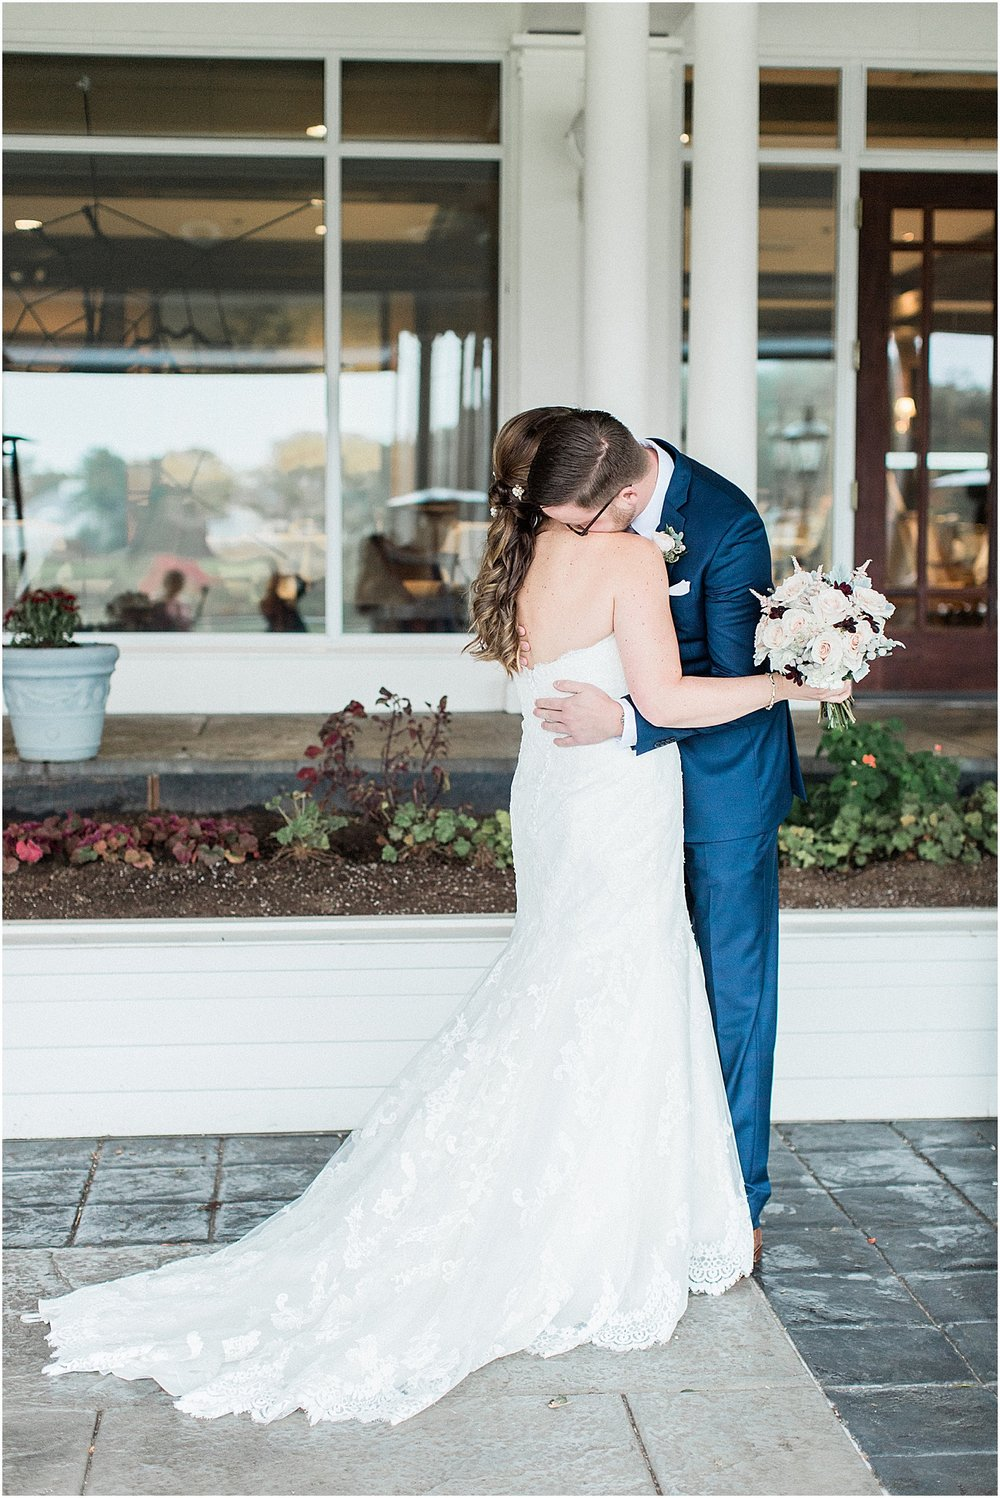 danielle_sean_willowbend_rain_rainy_day_cape_cod_boston_wedding_photographer_meredith_jane_photography_photo_1668.jpg